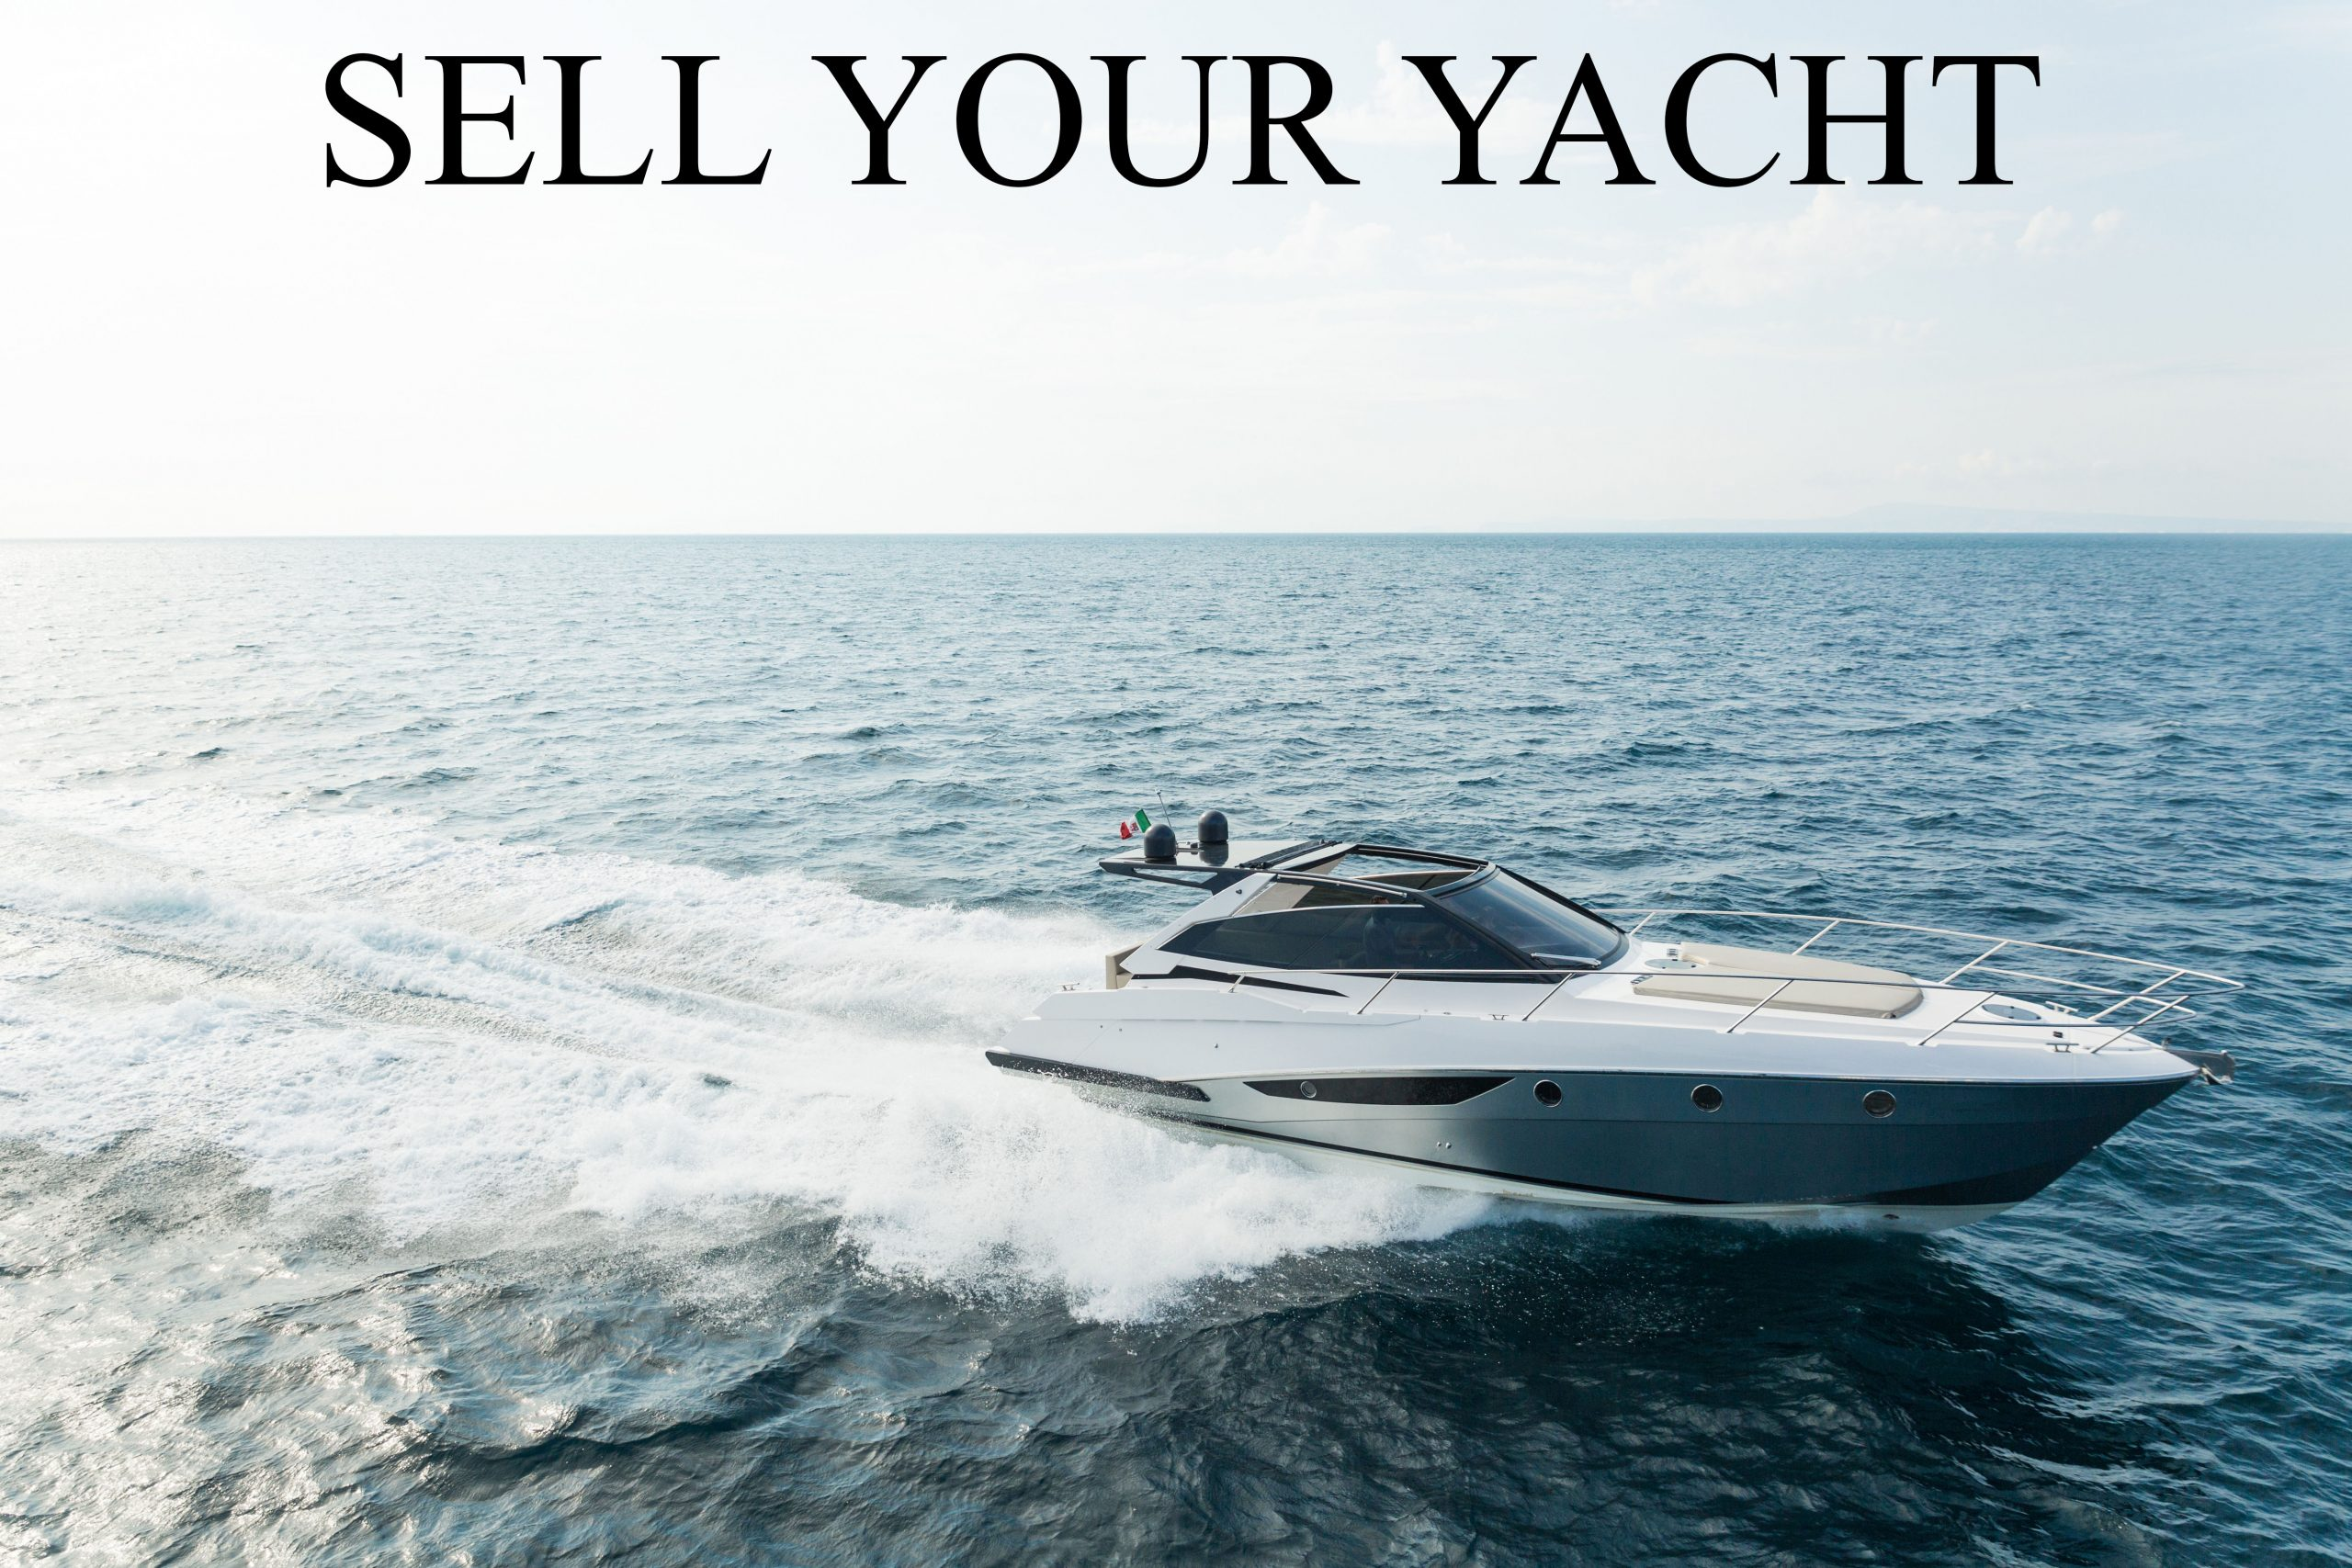 Sell Your Yacht